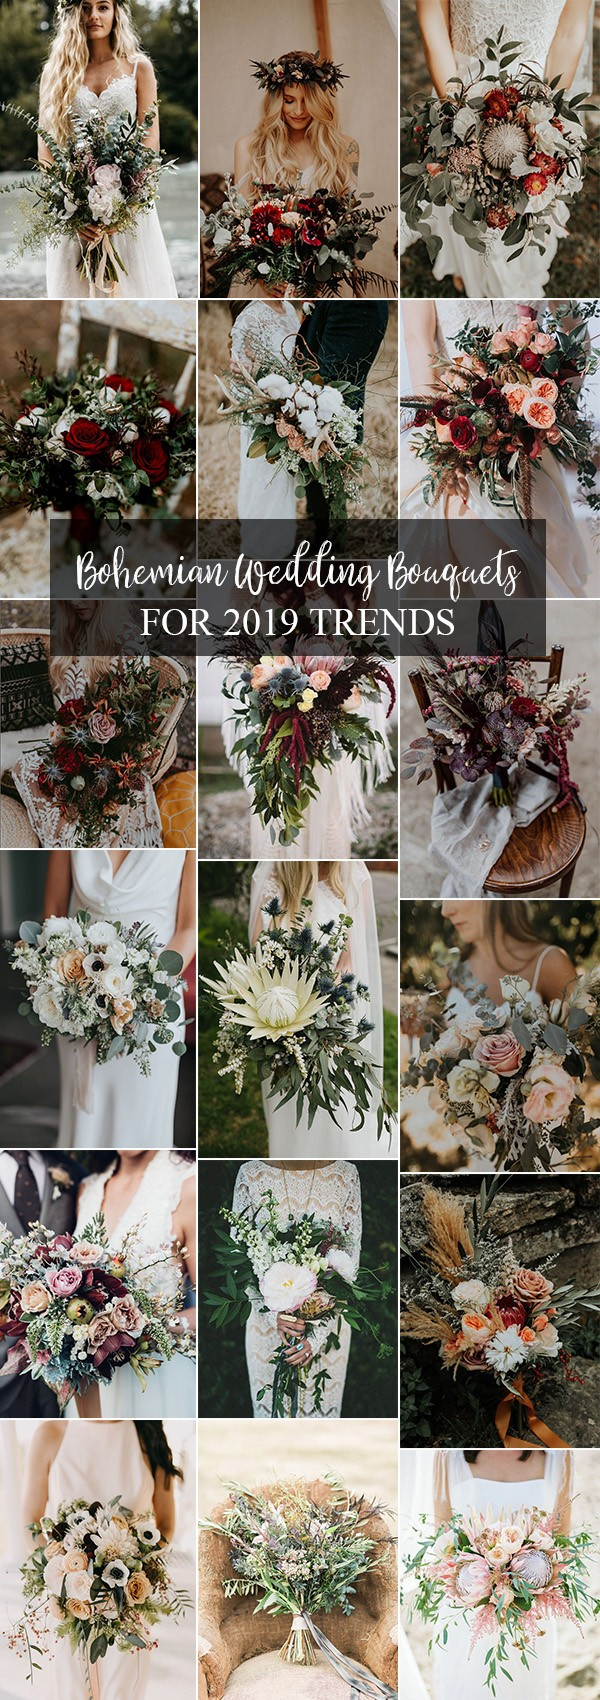 trending bohemian wedding bouquets for 2019